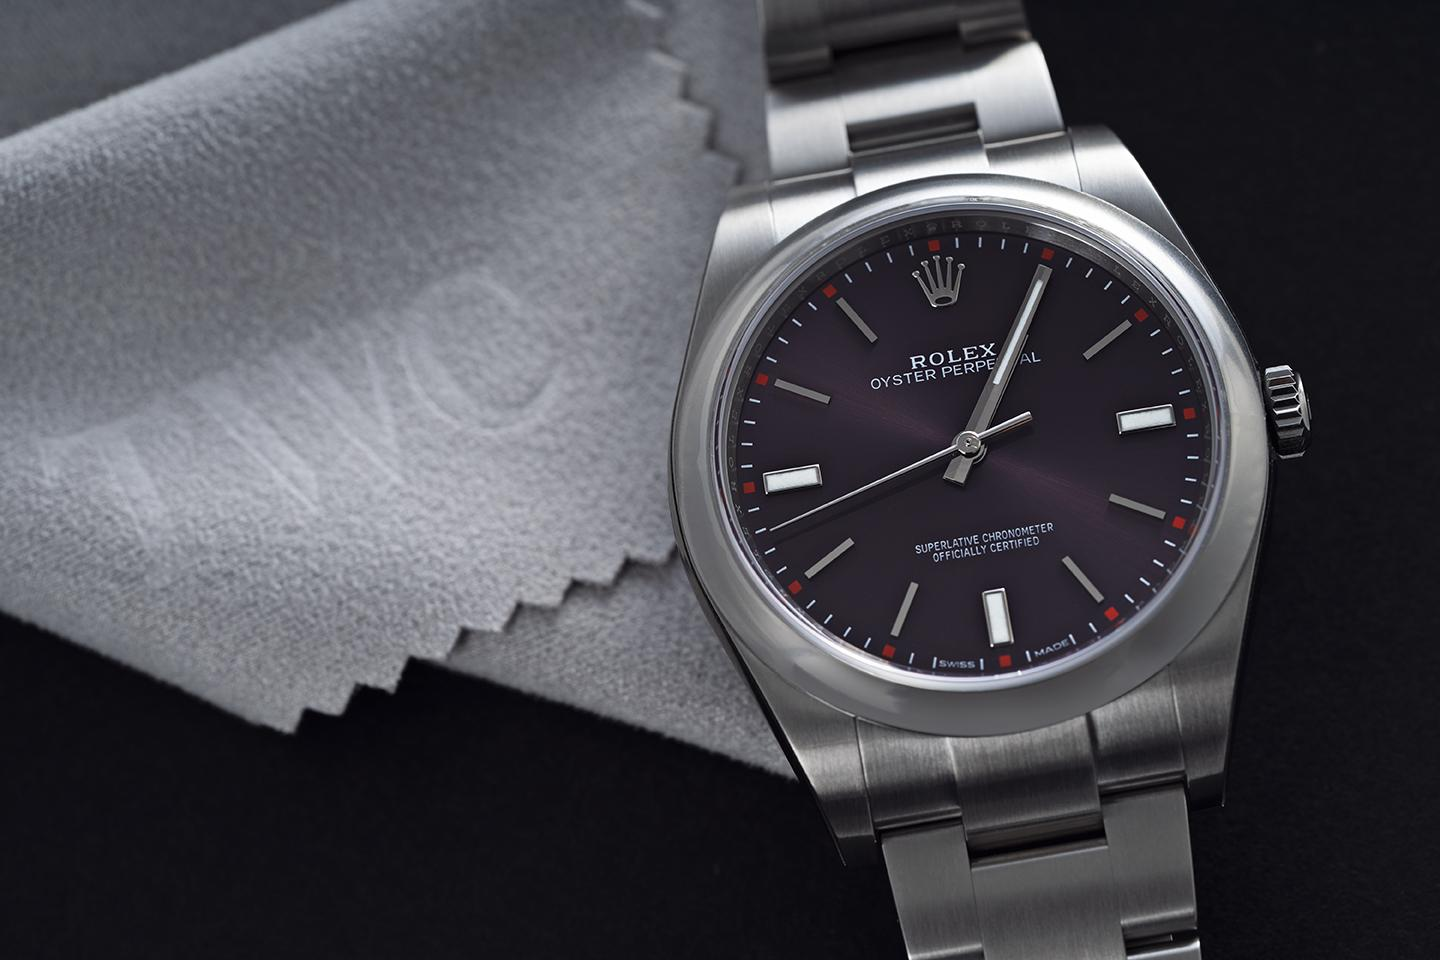 5 Affordable Rolex Watches For New Collectors - The Watch Company